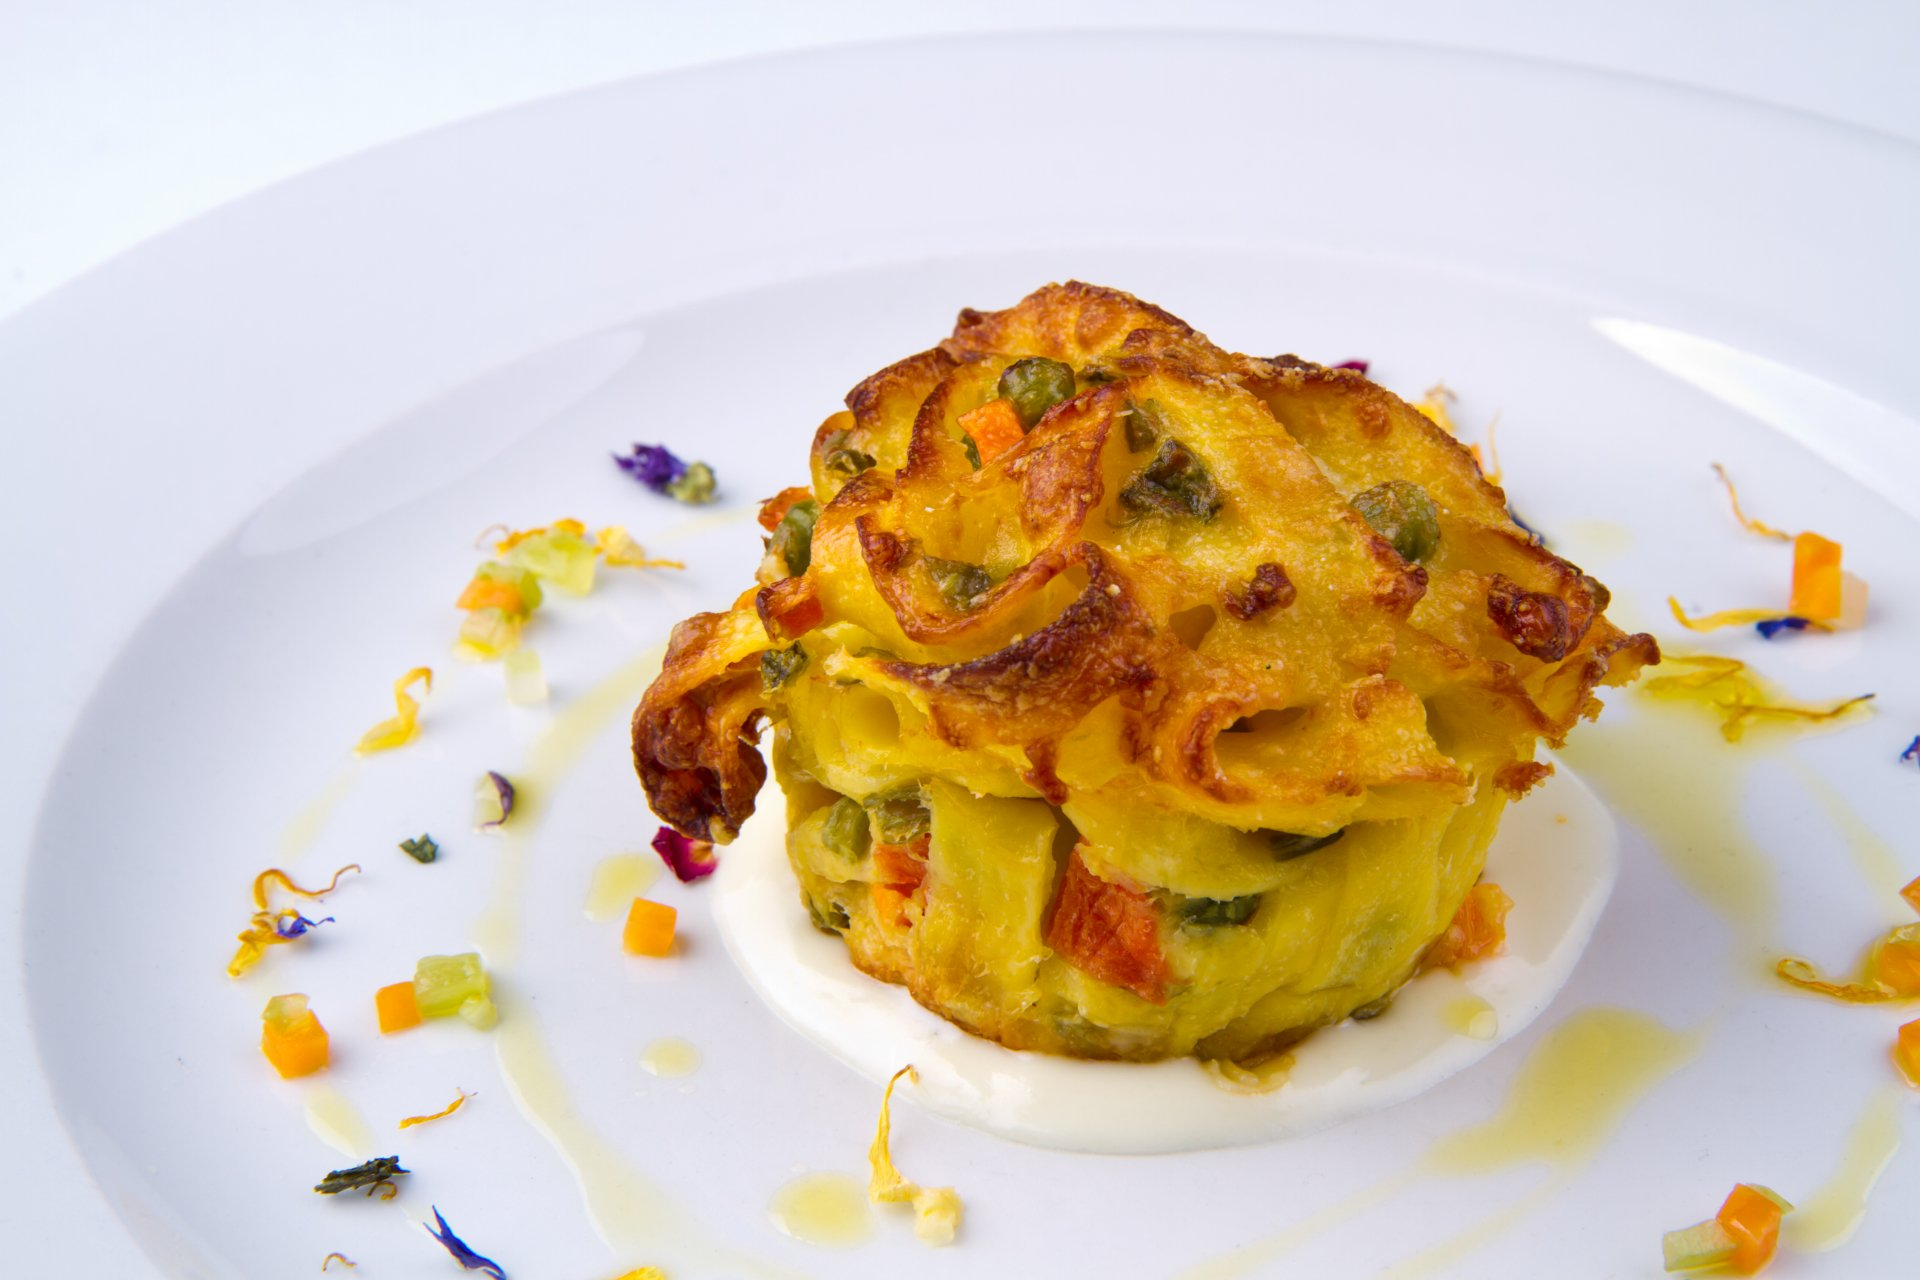 Tagliatelle, spring vegetable and stracchino cheese timbale - Enyo